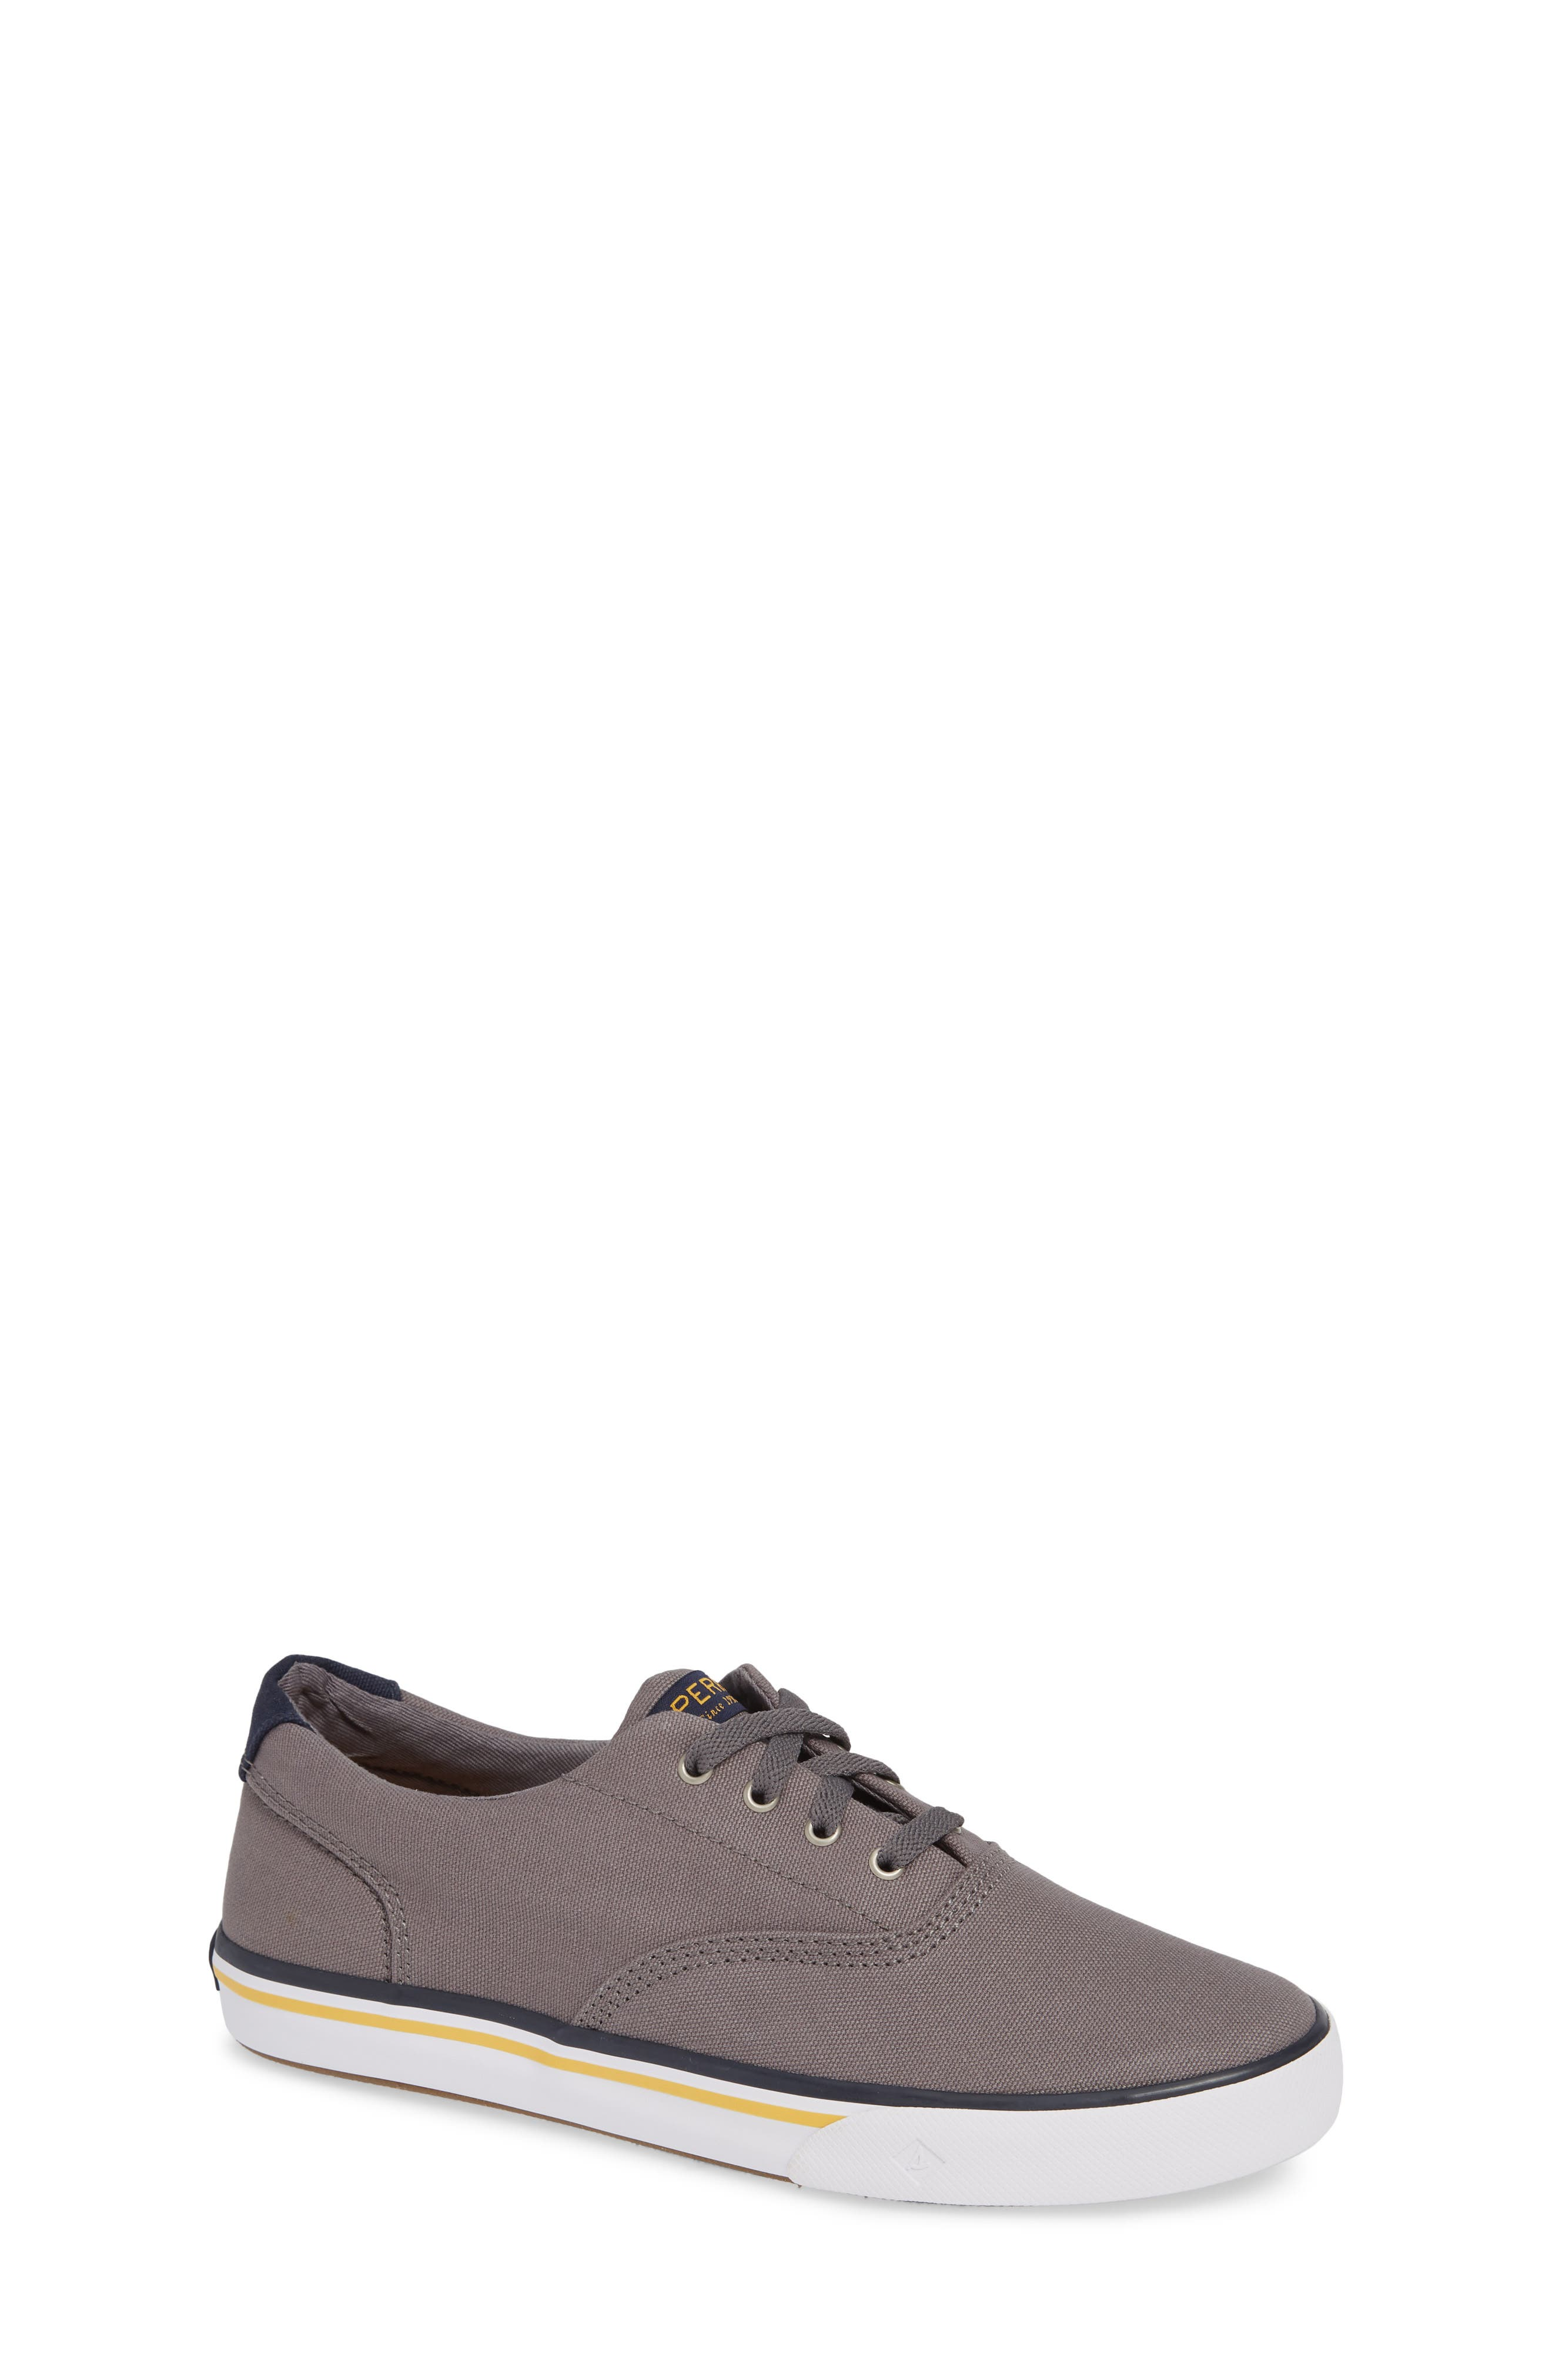 c36d283636e Sperry Top-Siders for Boys